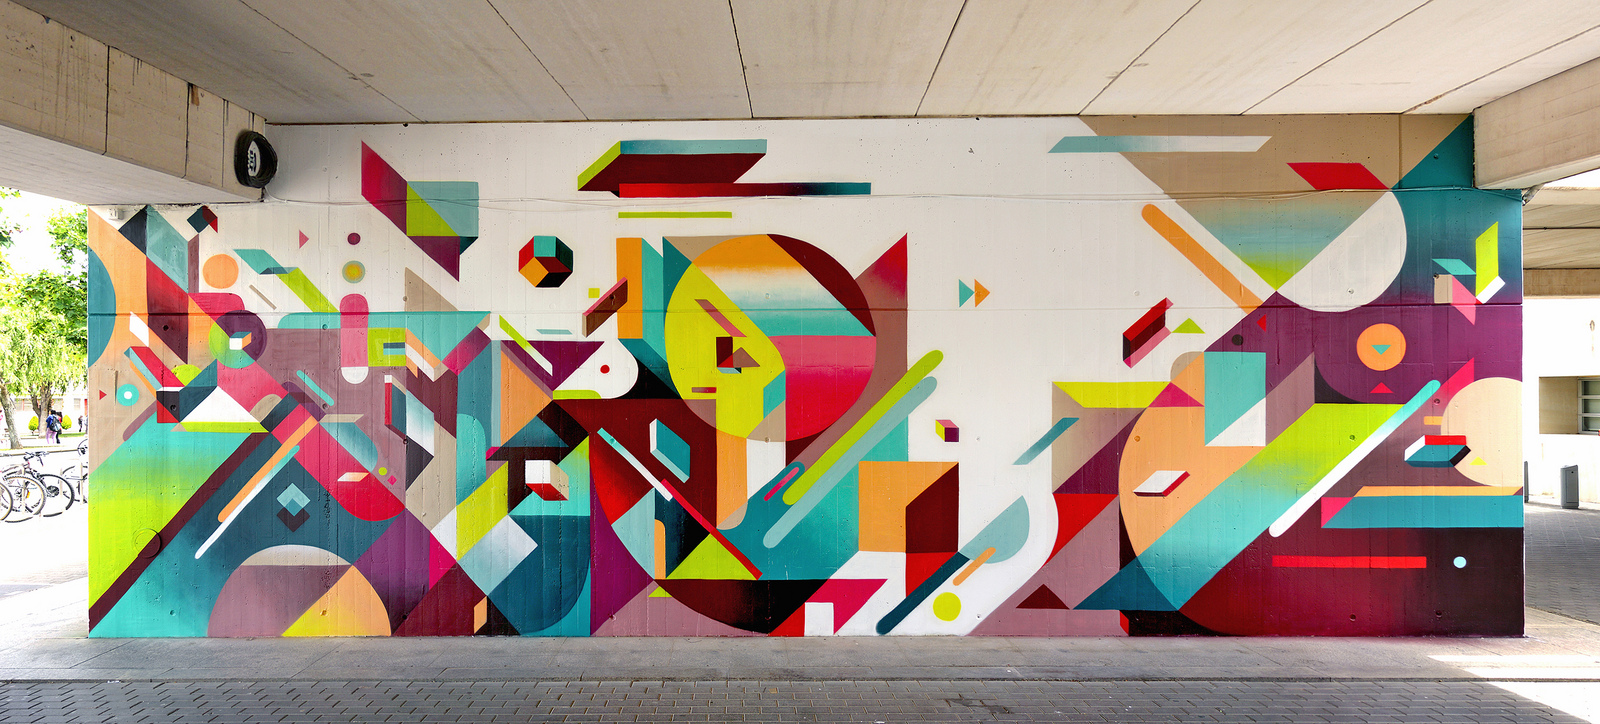 Nelio new mural in valencia spain streetartnews for Contemporary mural art